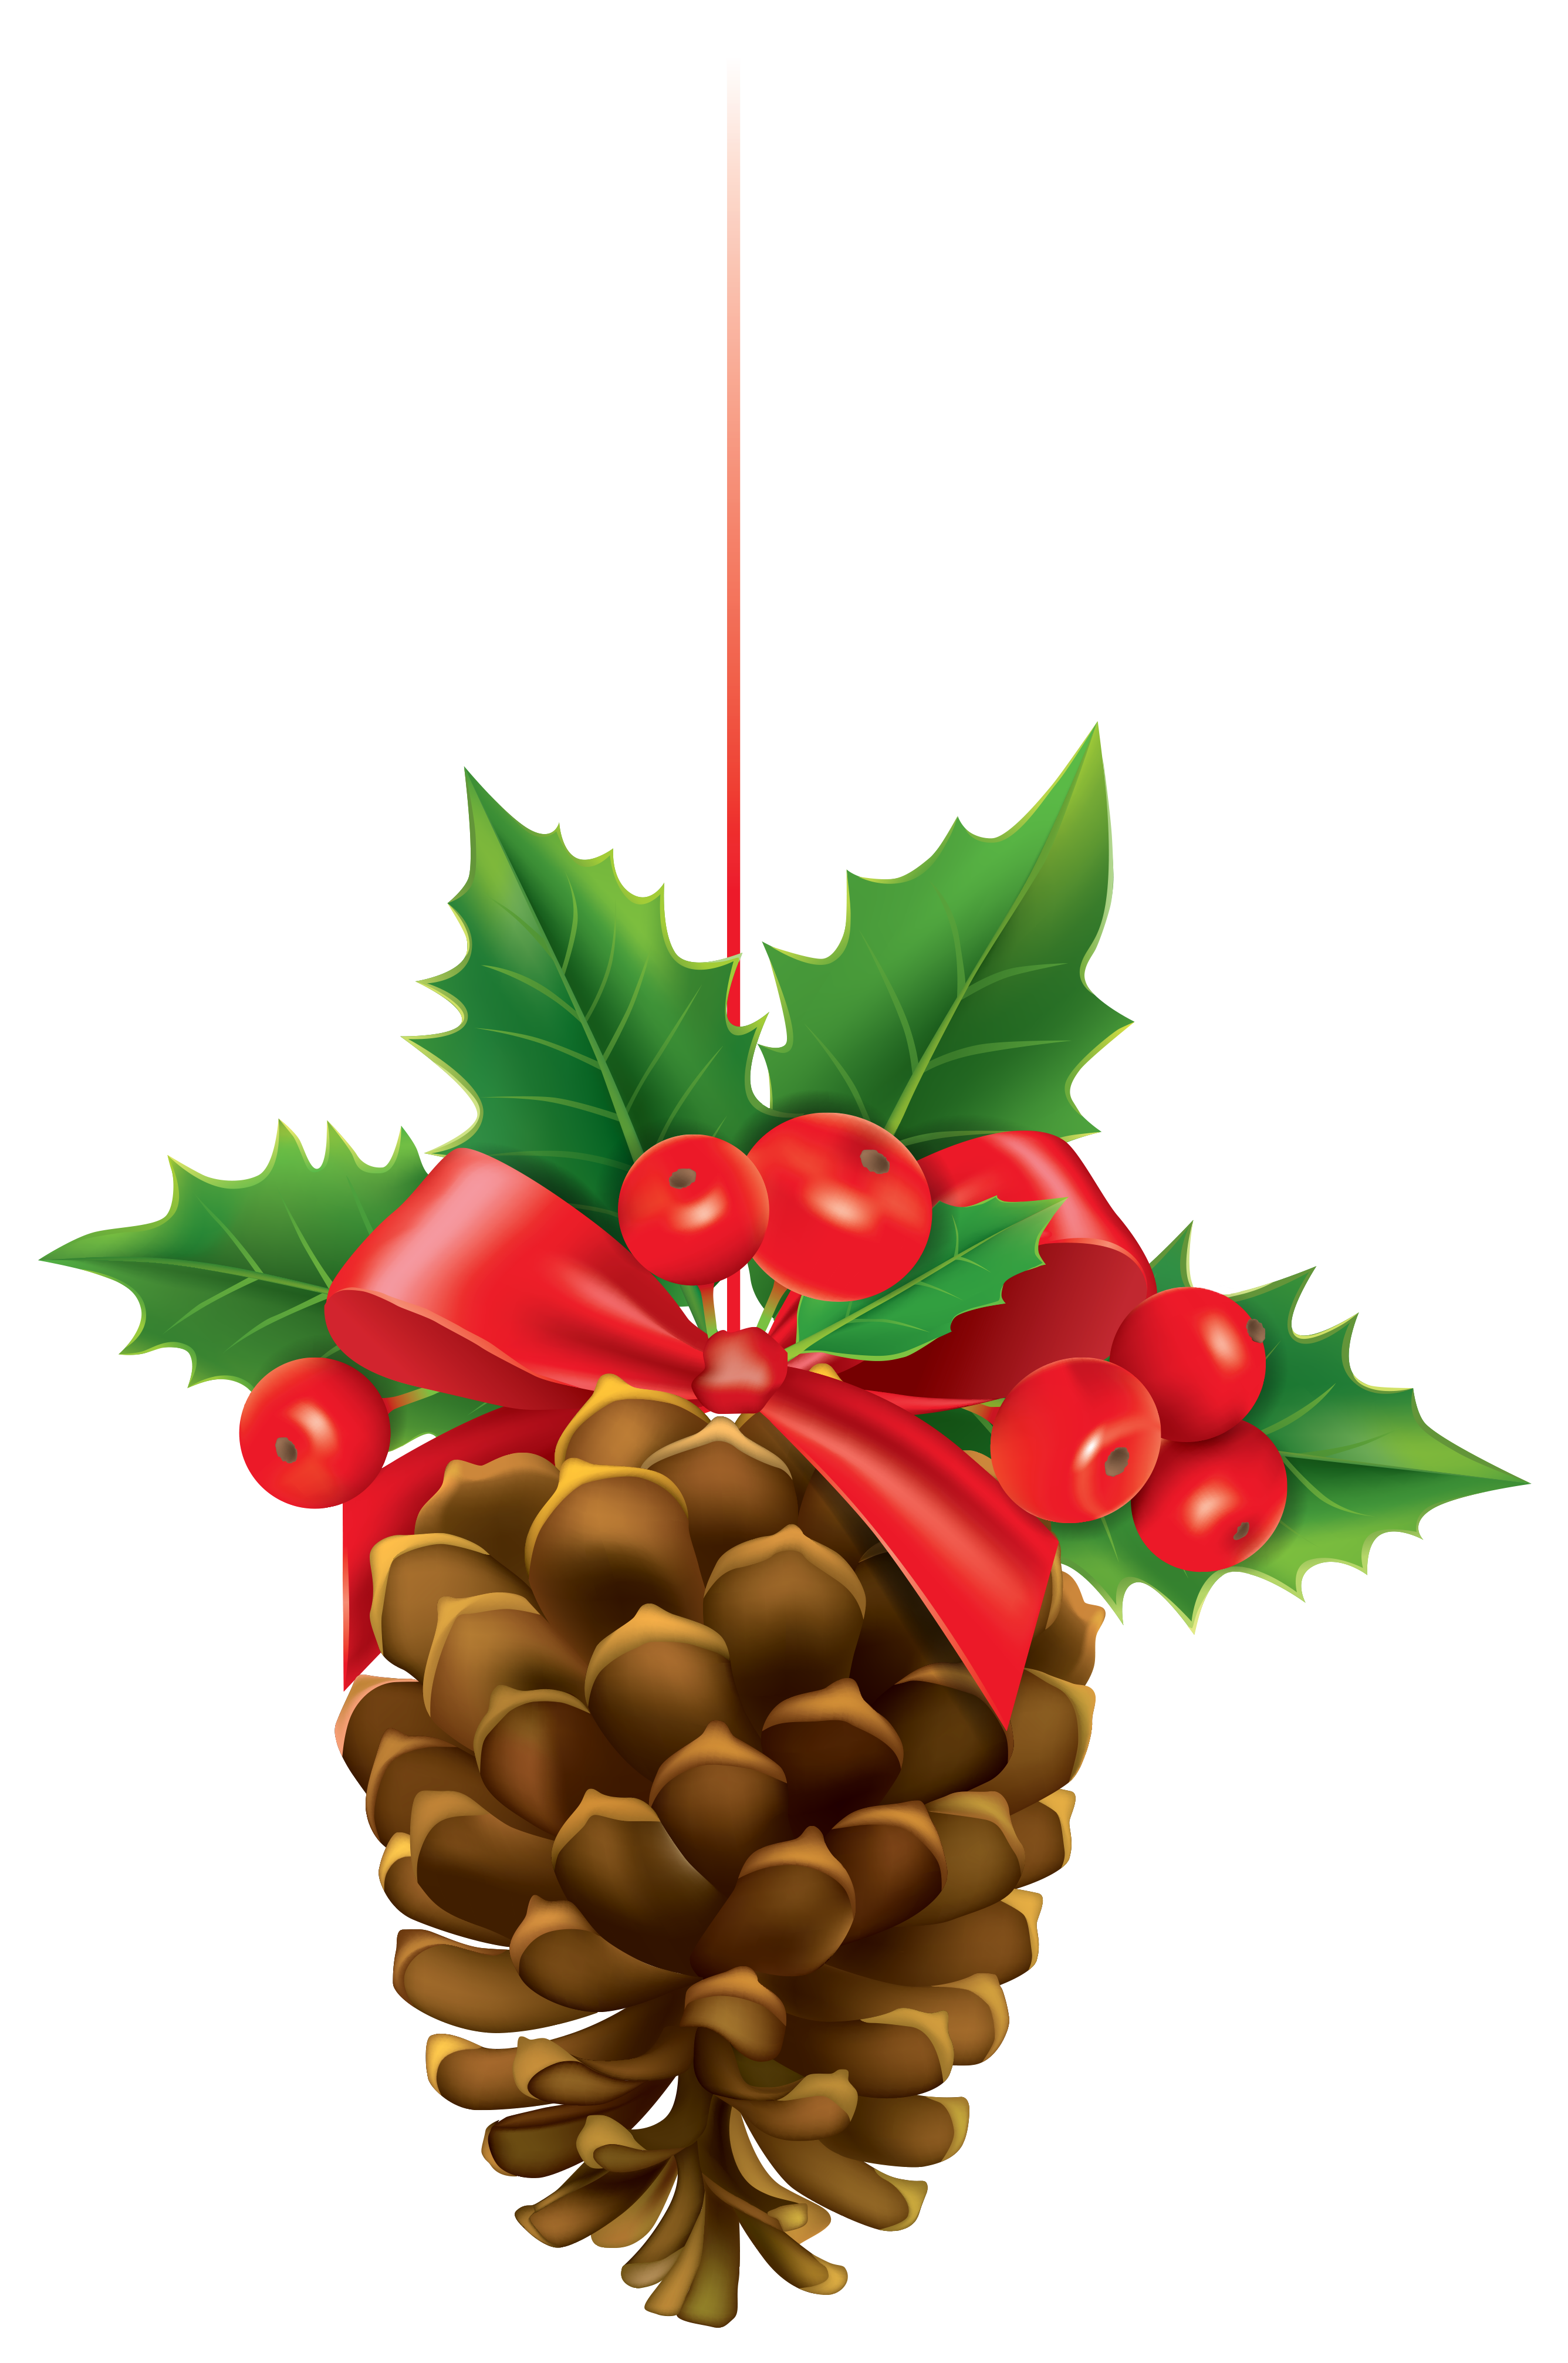 Christmas pine cone png. Pinecone with mistletoe clipart